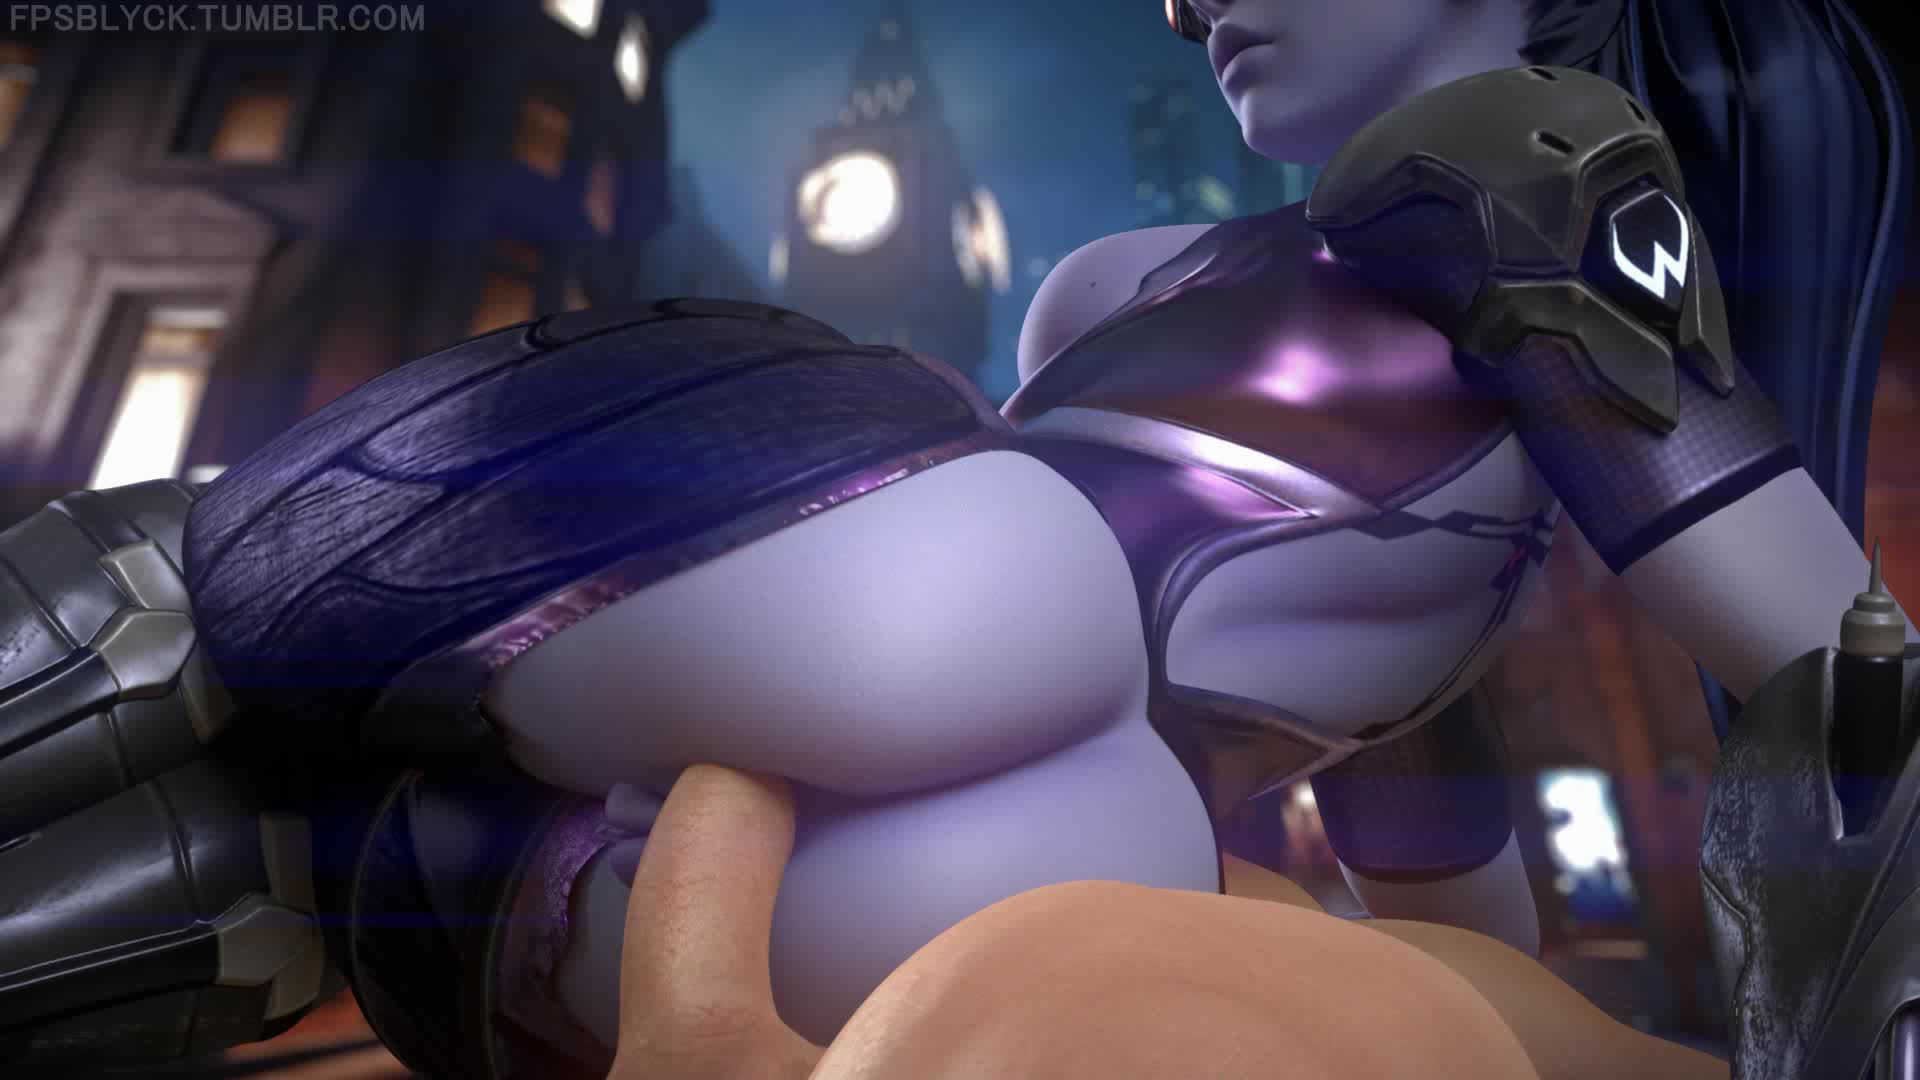 widowmaker anal